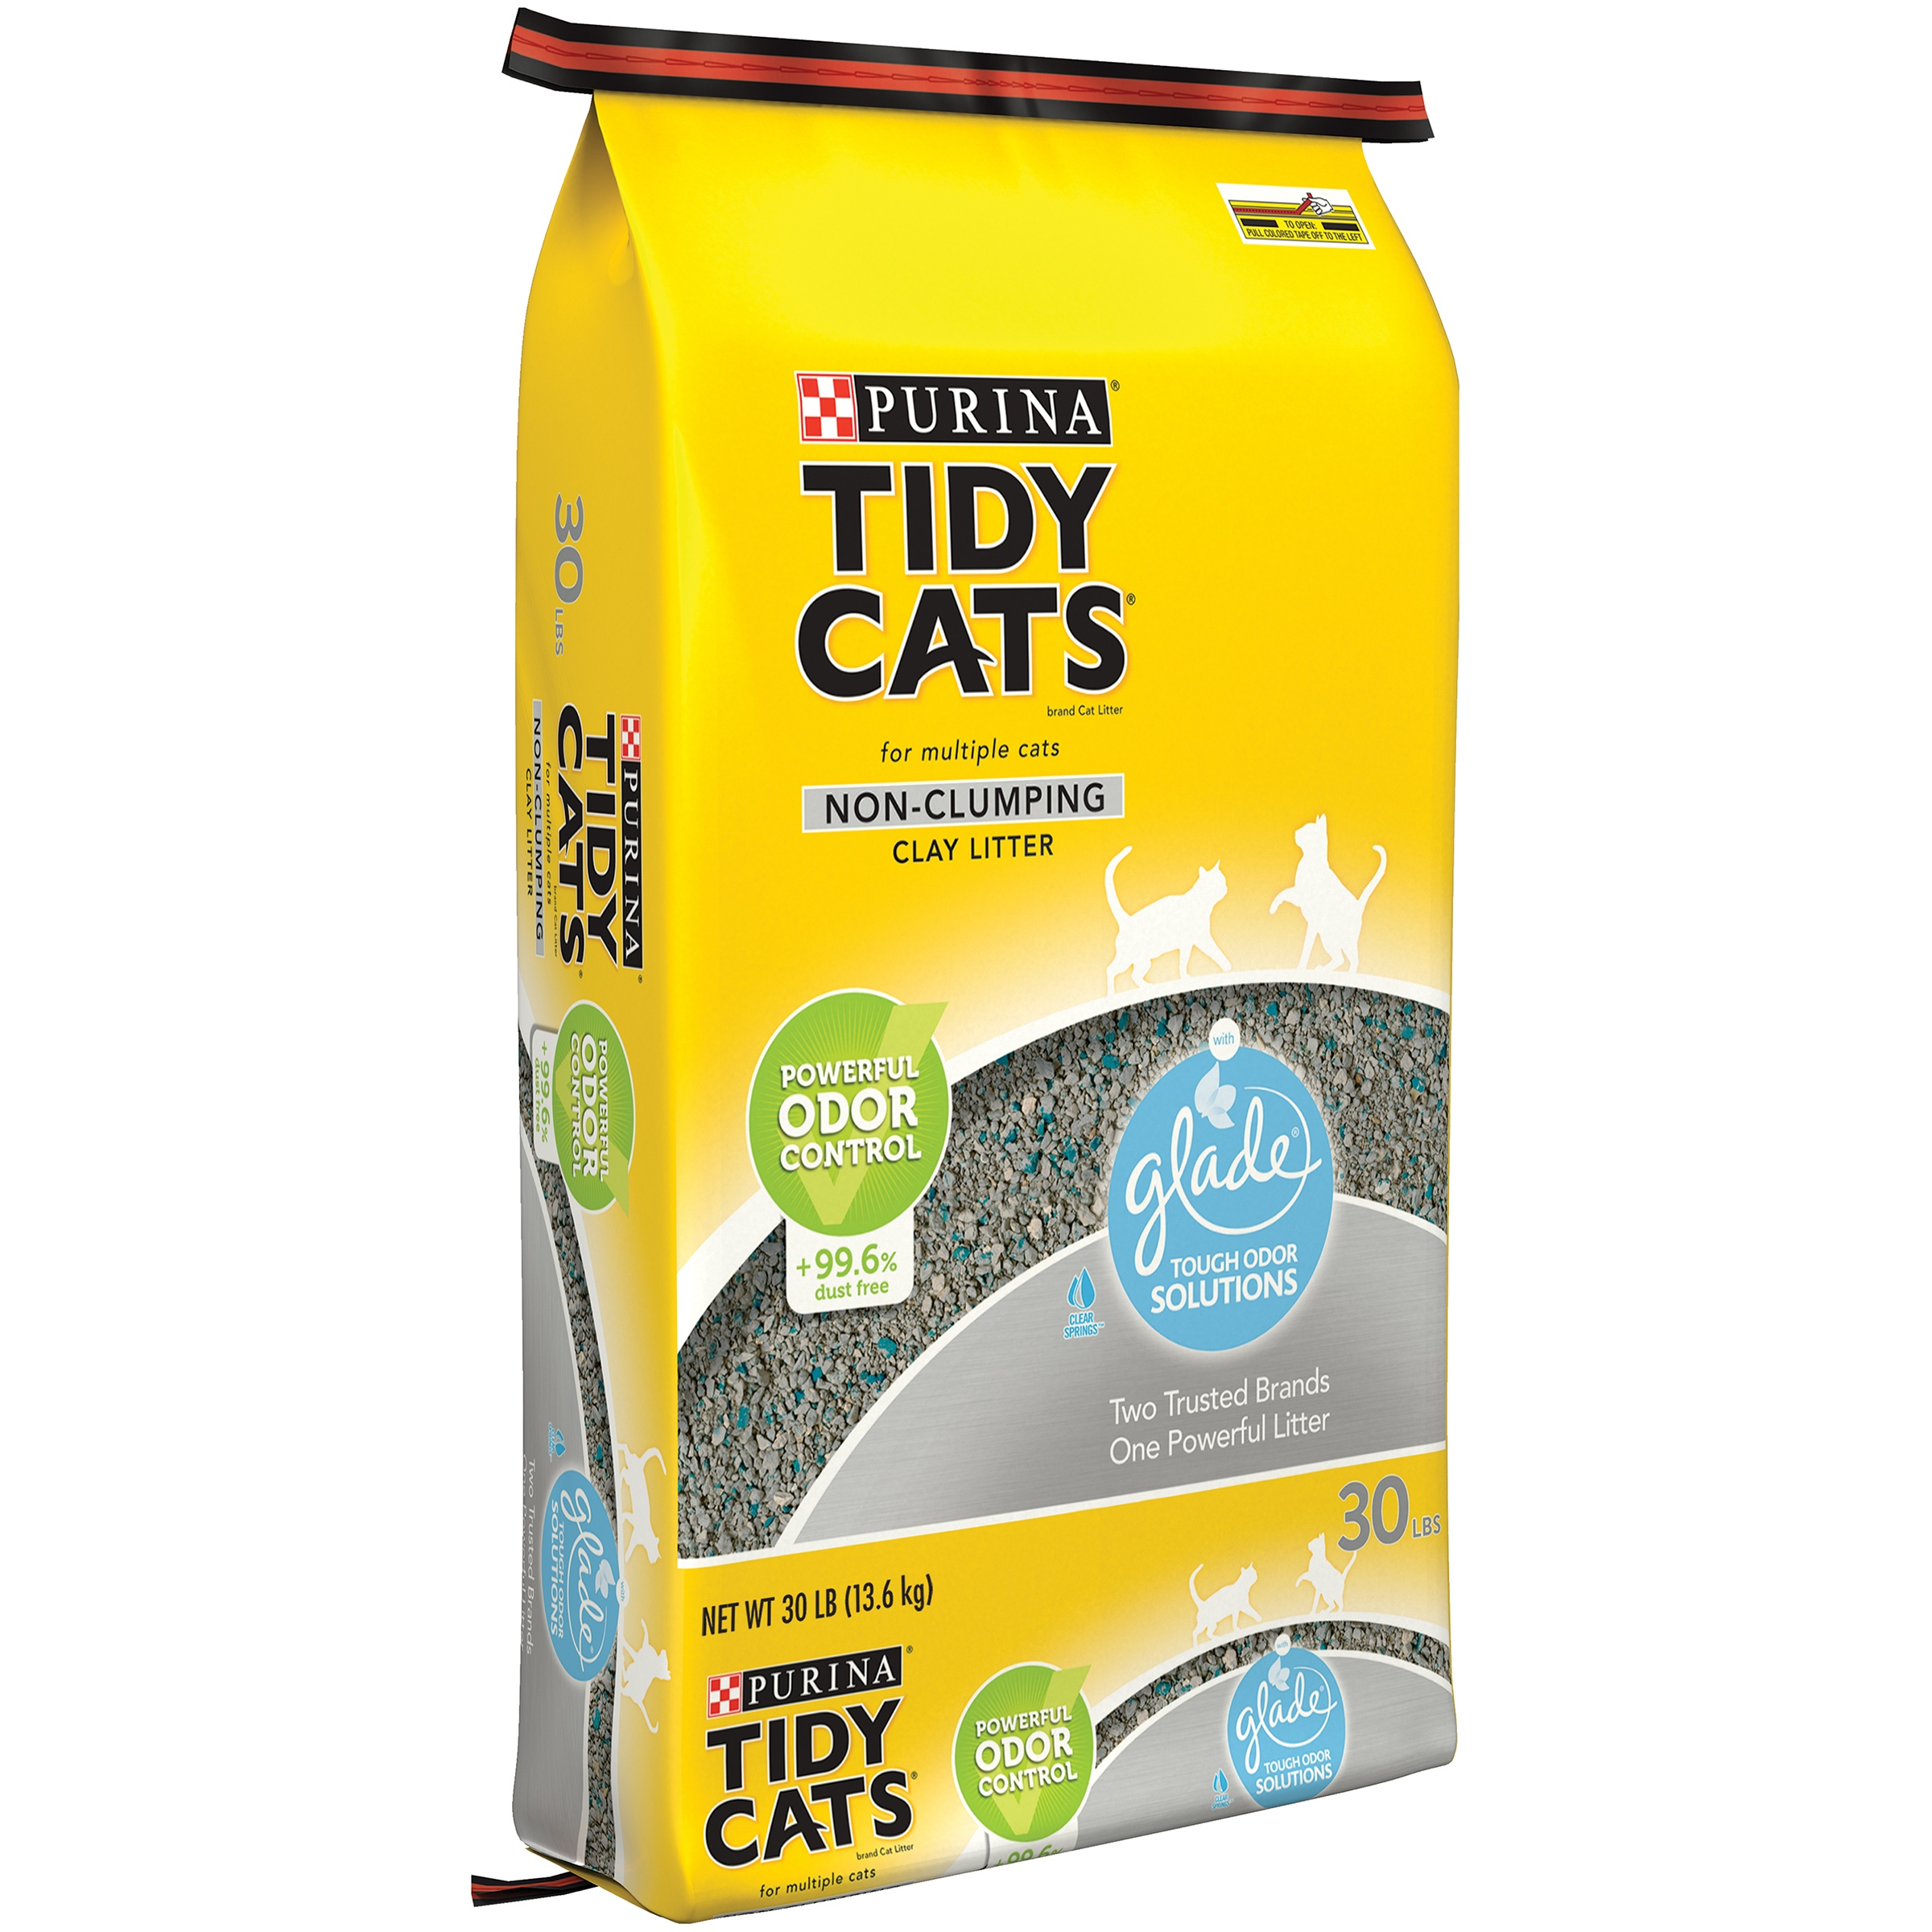 Purina Tidy Cats Glade Tough Odor Solutions Clear Springs Non-Clumping Cat Litter, 30 Lb.